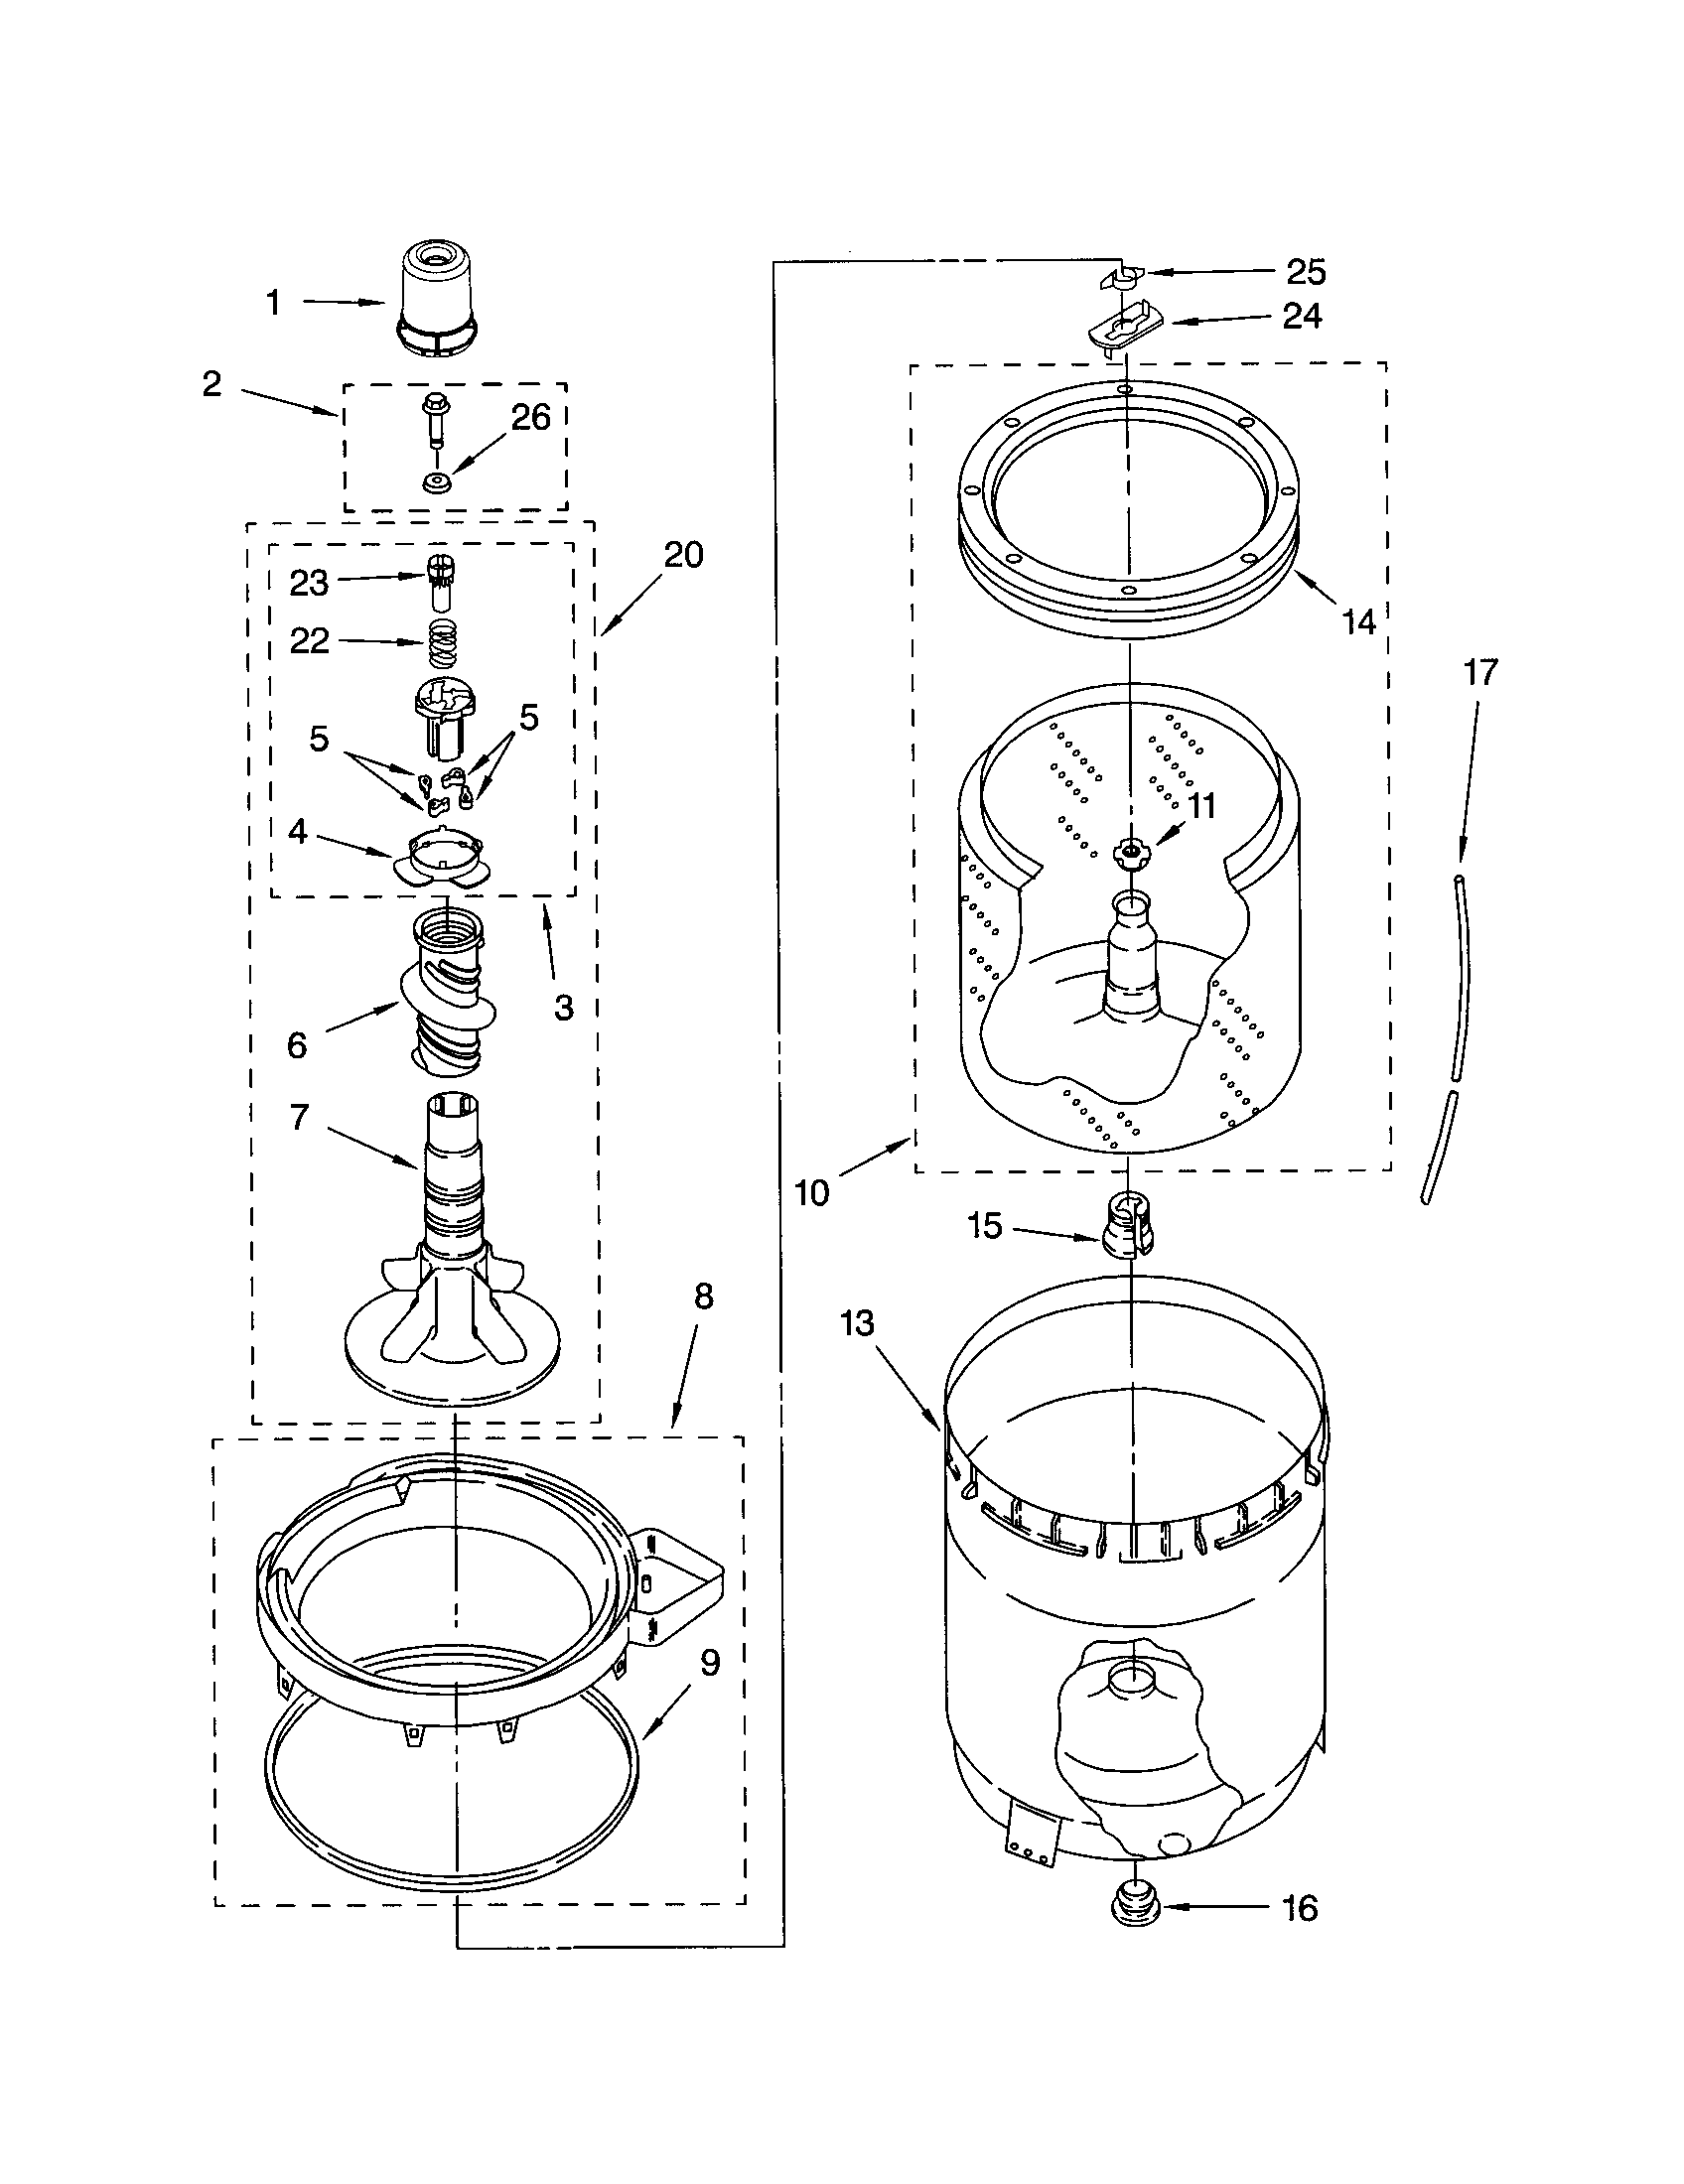 Kenmore 80 Series Washer Parts Diagram Furthermore Kenmore